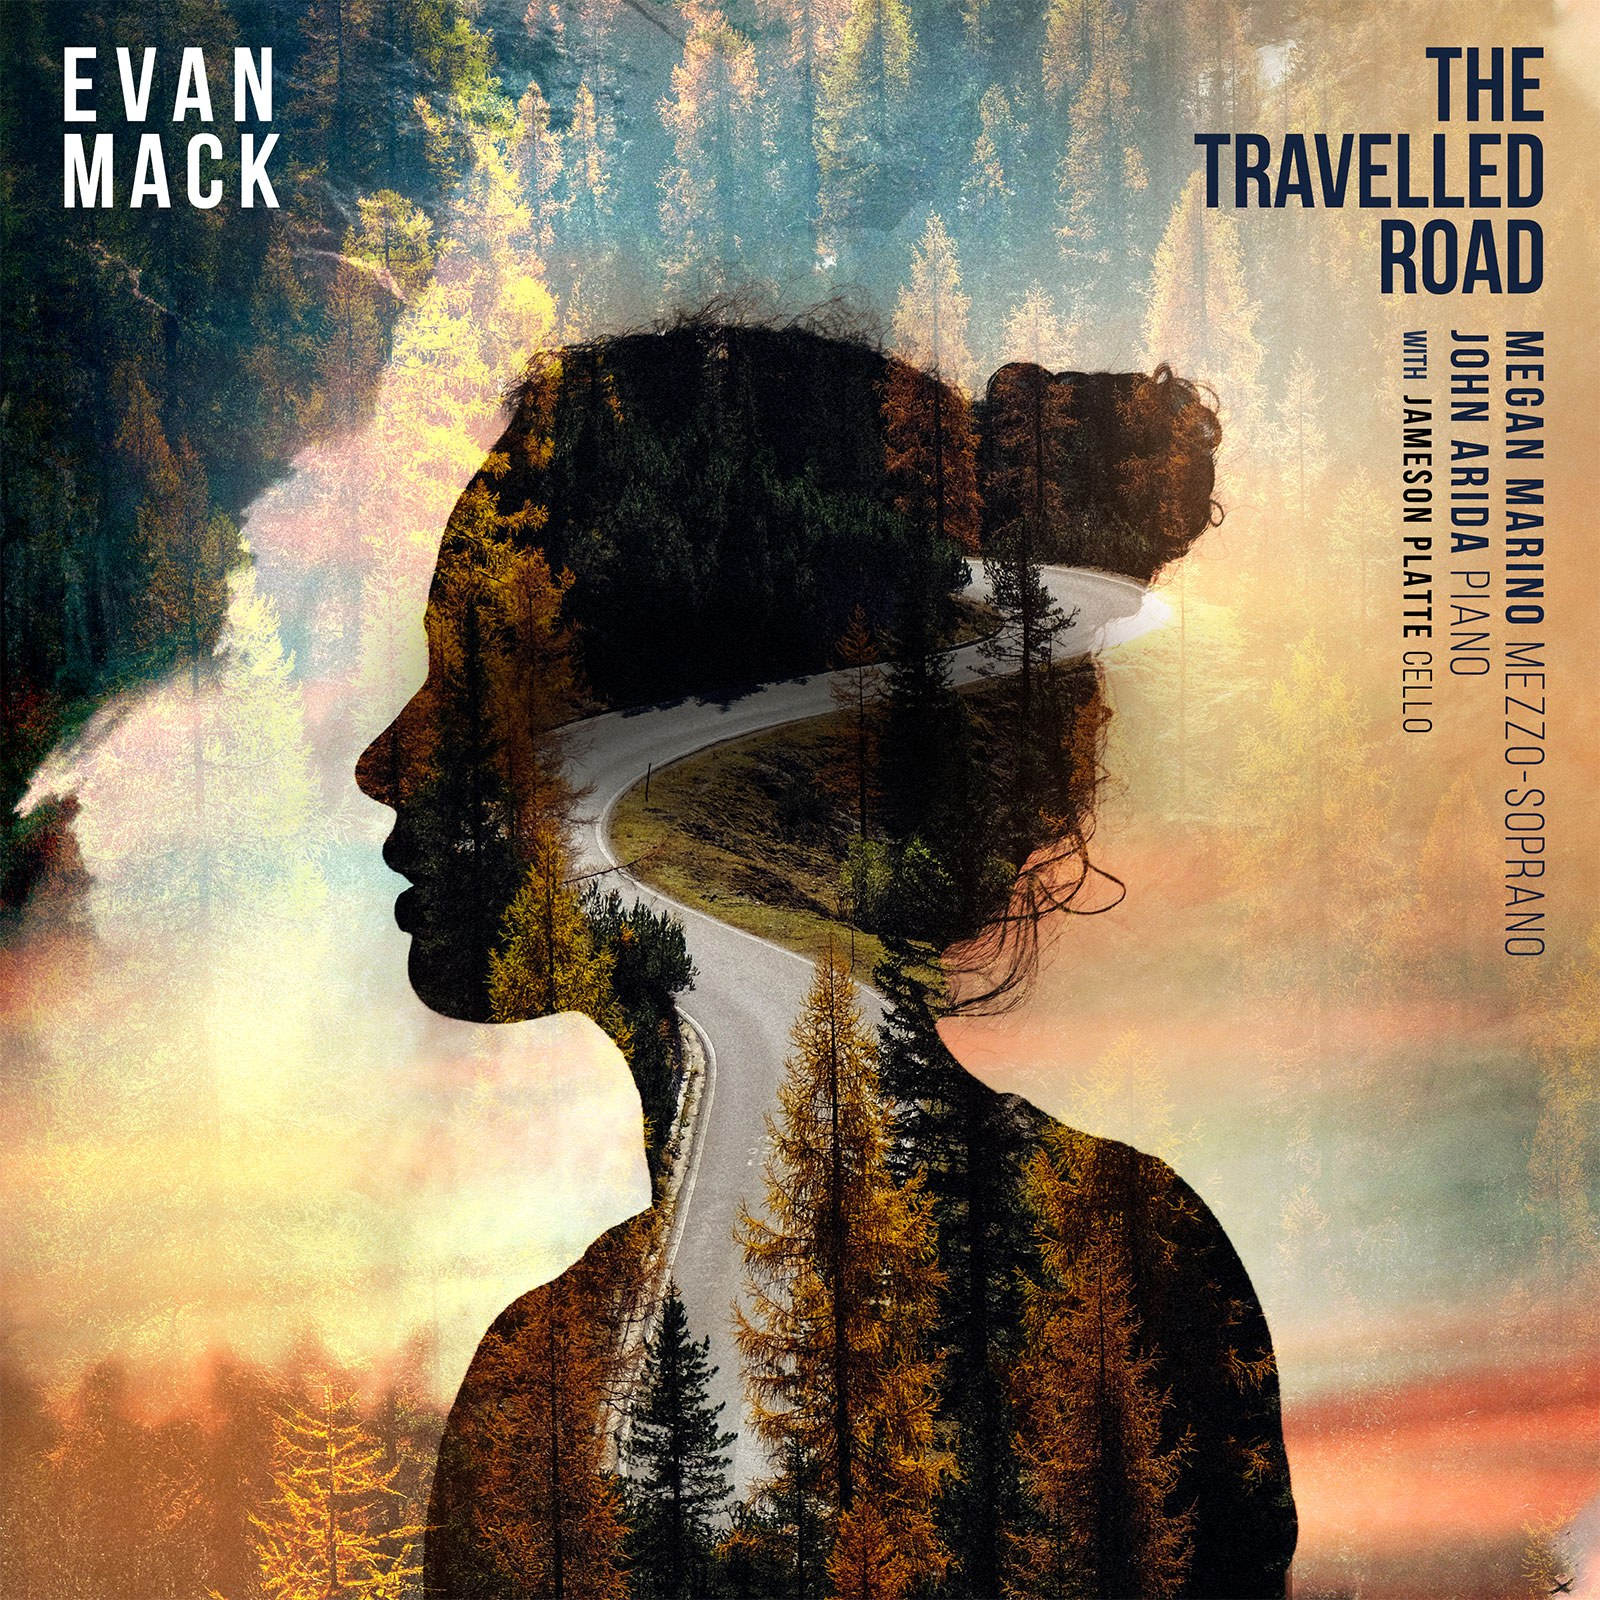 THE TRAVELLED ROAD-Album Cover